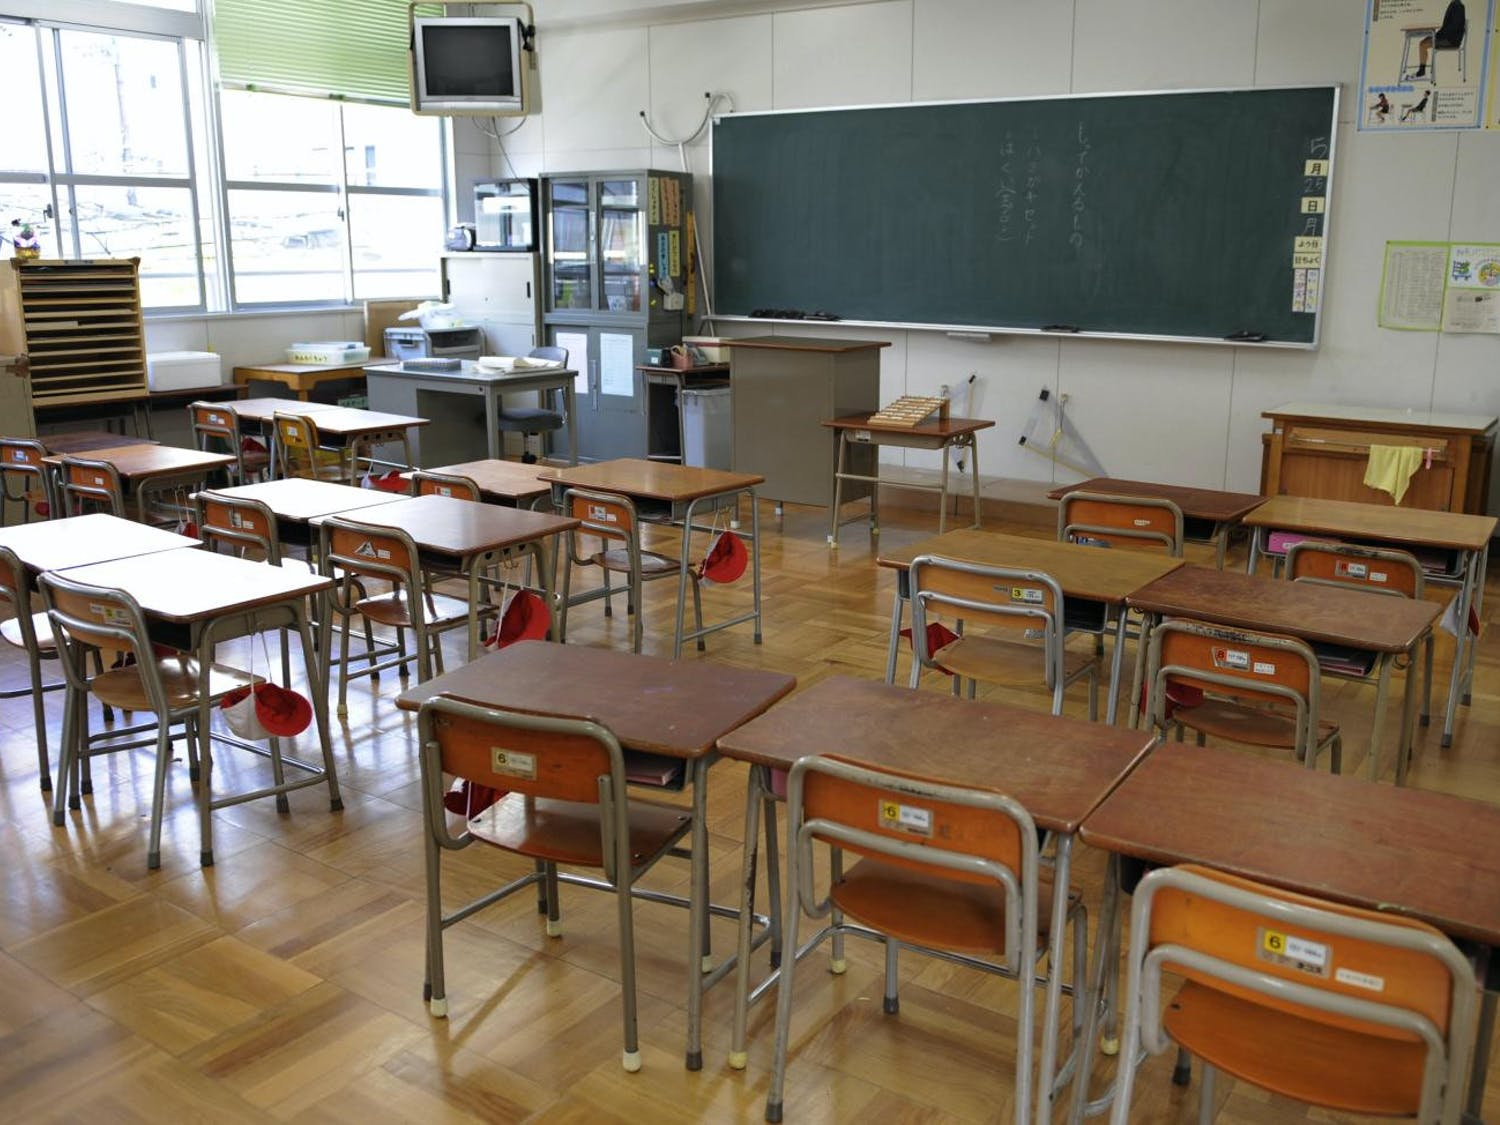 An empty classroom of the Nisitenma elementary school in Osaka is seen on May 18, 2009. Japan has confirmed 129 swine flu cases and shuttered more than 2,000 schools and kindergartens in a bid to slow the spread of the virus that may already have infected hundreds. AFP PHOTO / Kazuhiro NOGI (Photo credit should read KAZUHIRO NOGI/AFP/Getty Images)